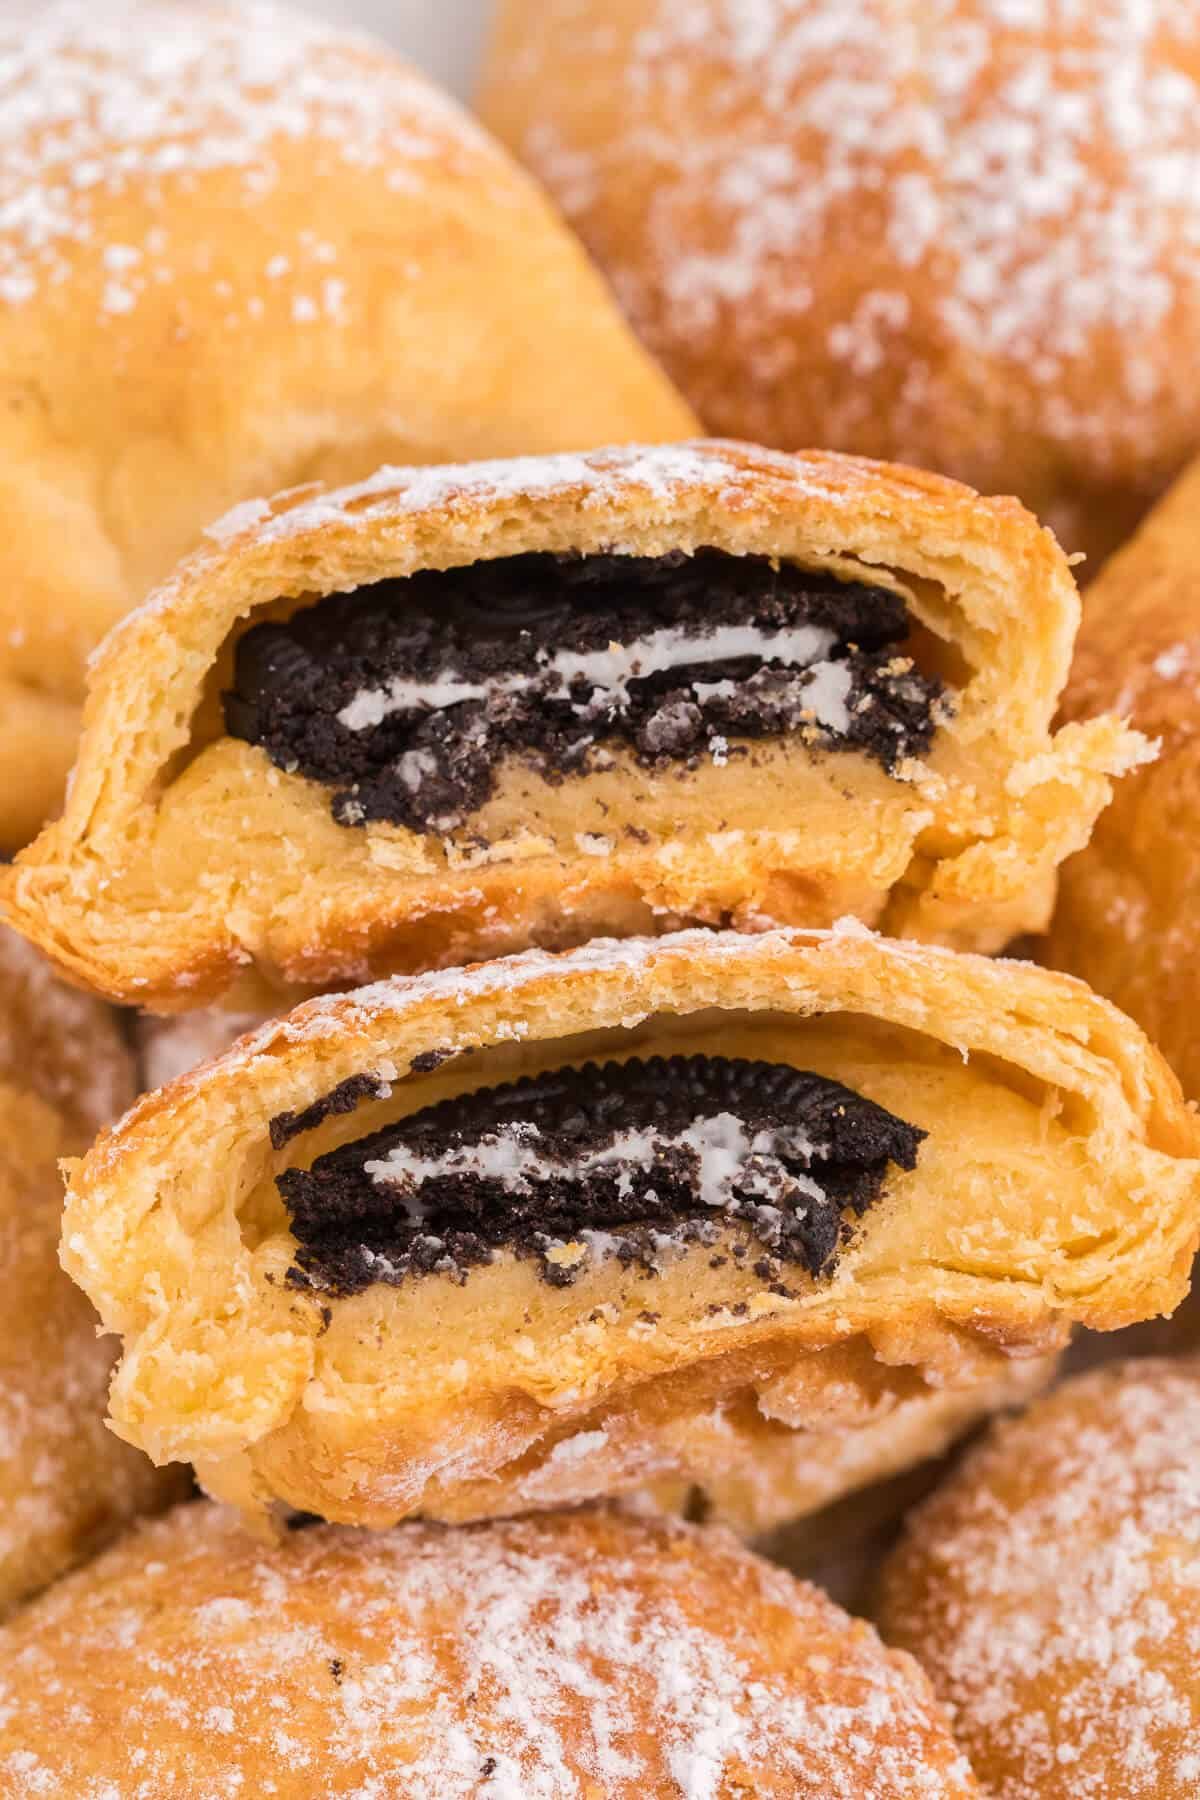 Air Fryer Oreos with Crescent Rolls - An easy and fun carnival treat made in the air fryer with crescent roll dough. Oreo cookies are enveloped in a sweet and golden crescent roll packet and topped with powdered sugar. Ready to eat in under 15 minutes!